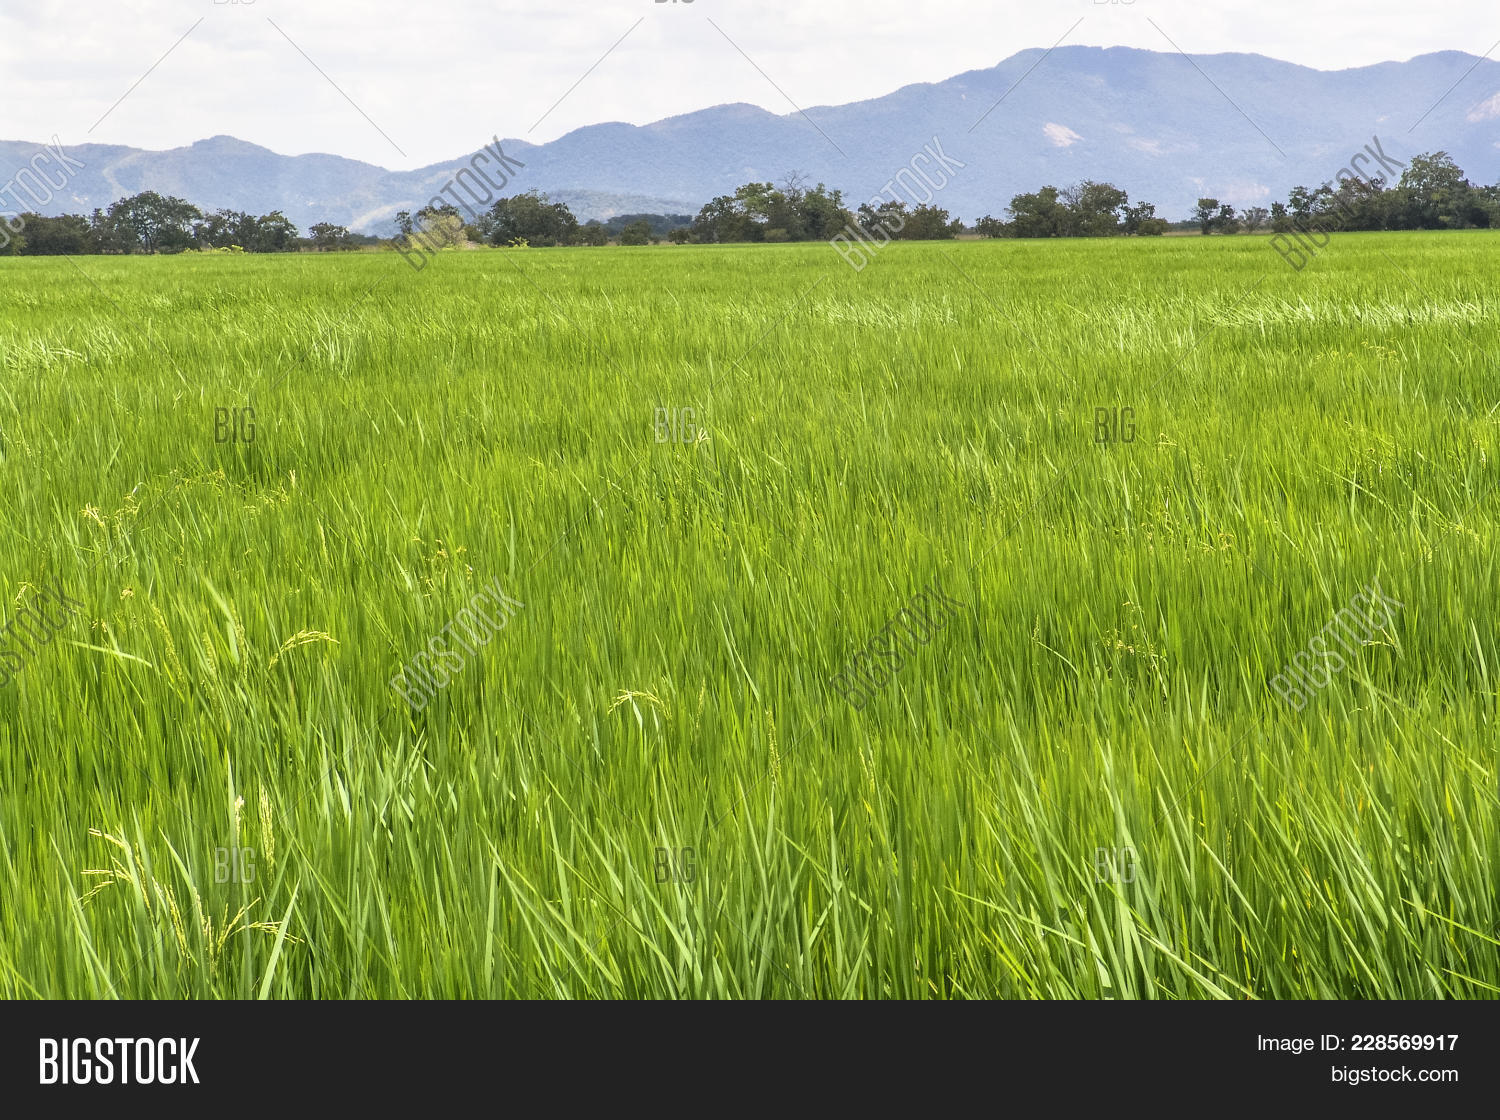 Farm rice field roraima powerpoint template farm rice field agricultural powerpoint template 60 slides toneelgroepblik